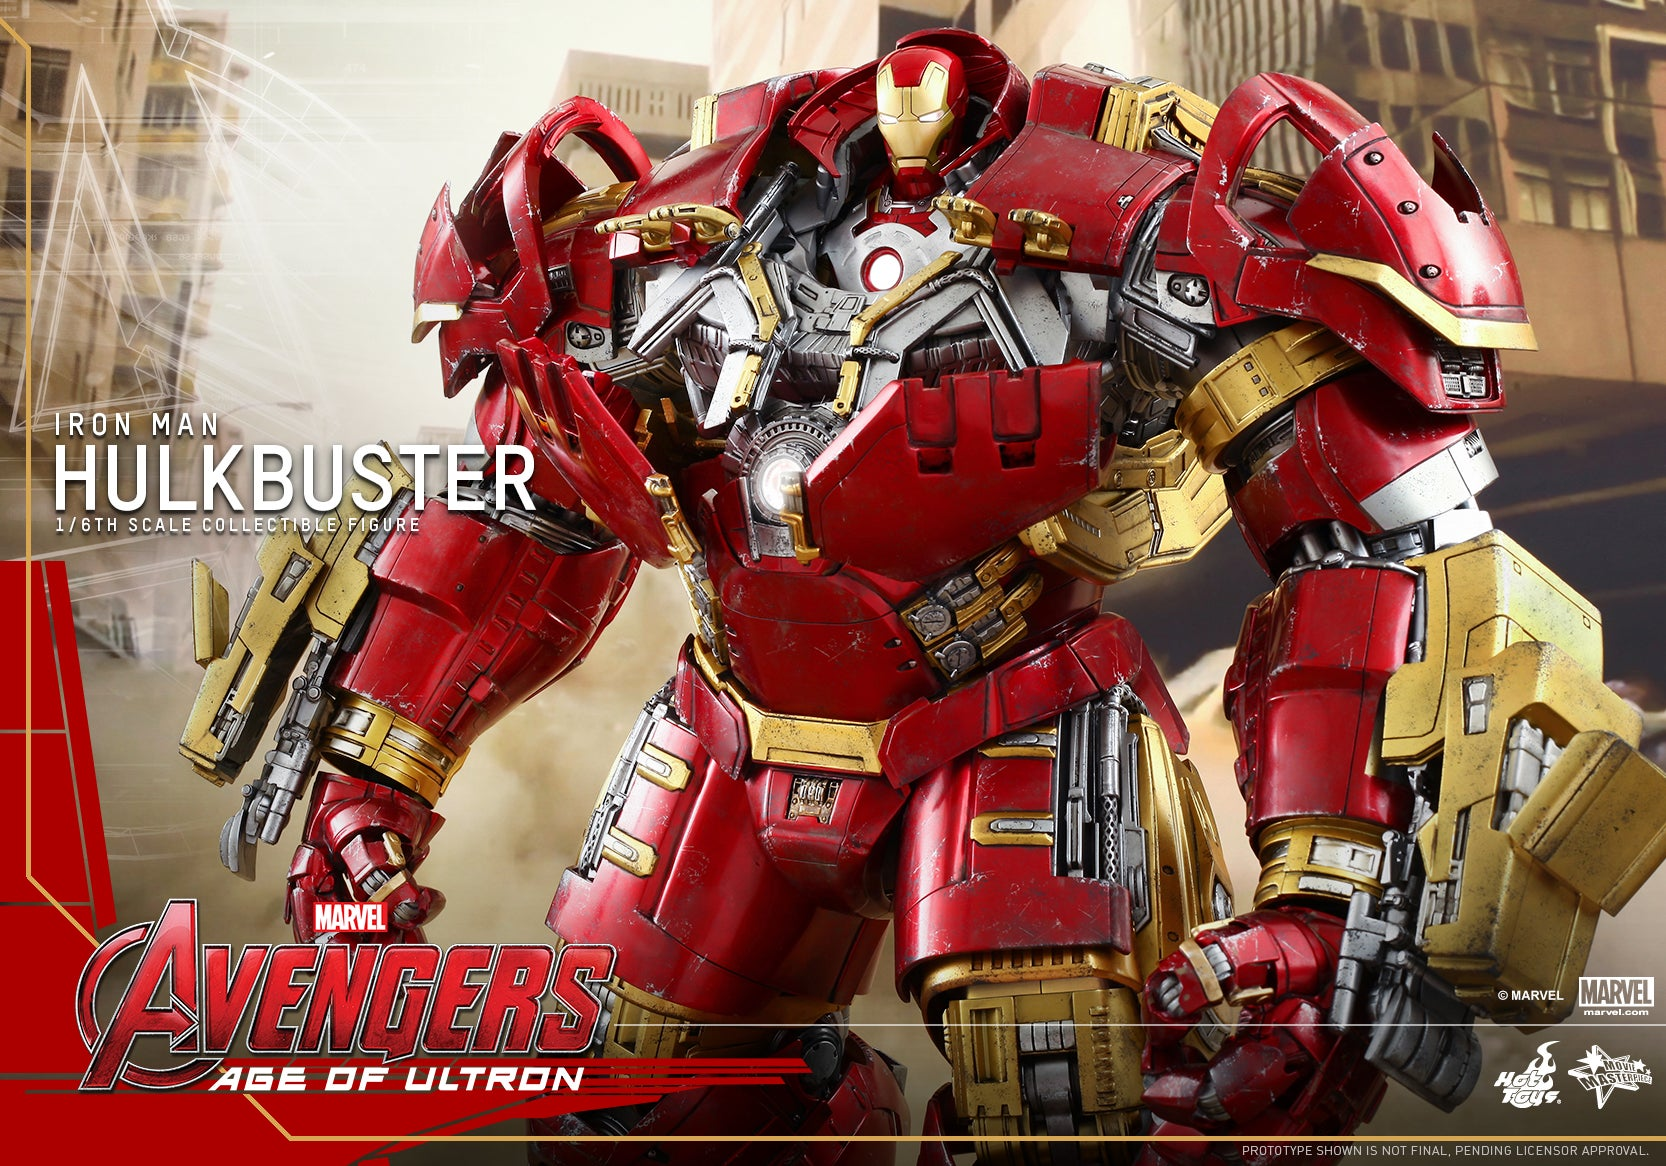 Hot Toys Reveals LED Light Up Function For Iron Man Hulkbuster Figure